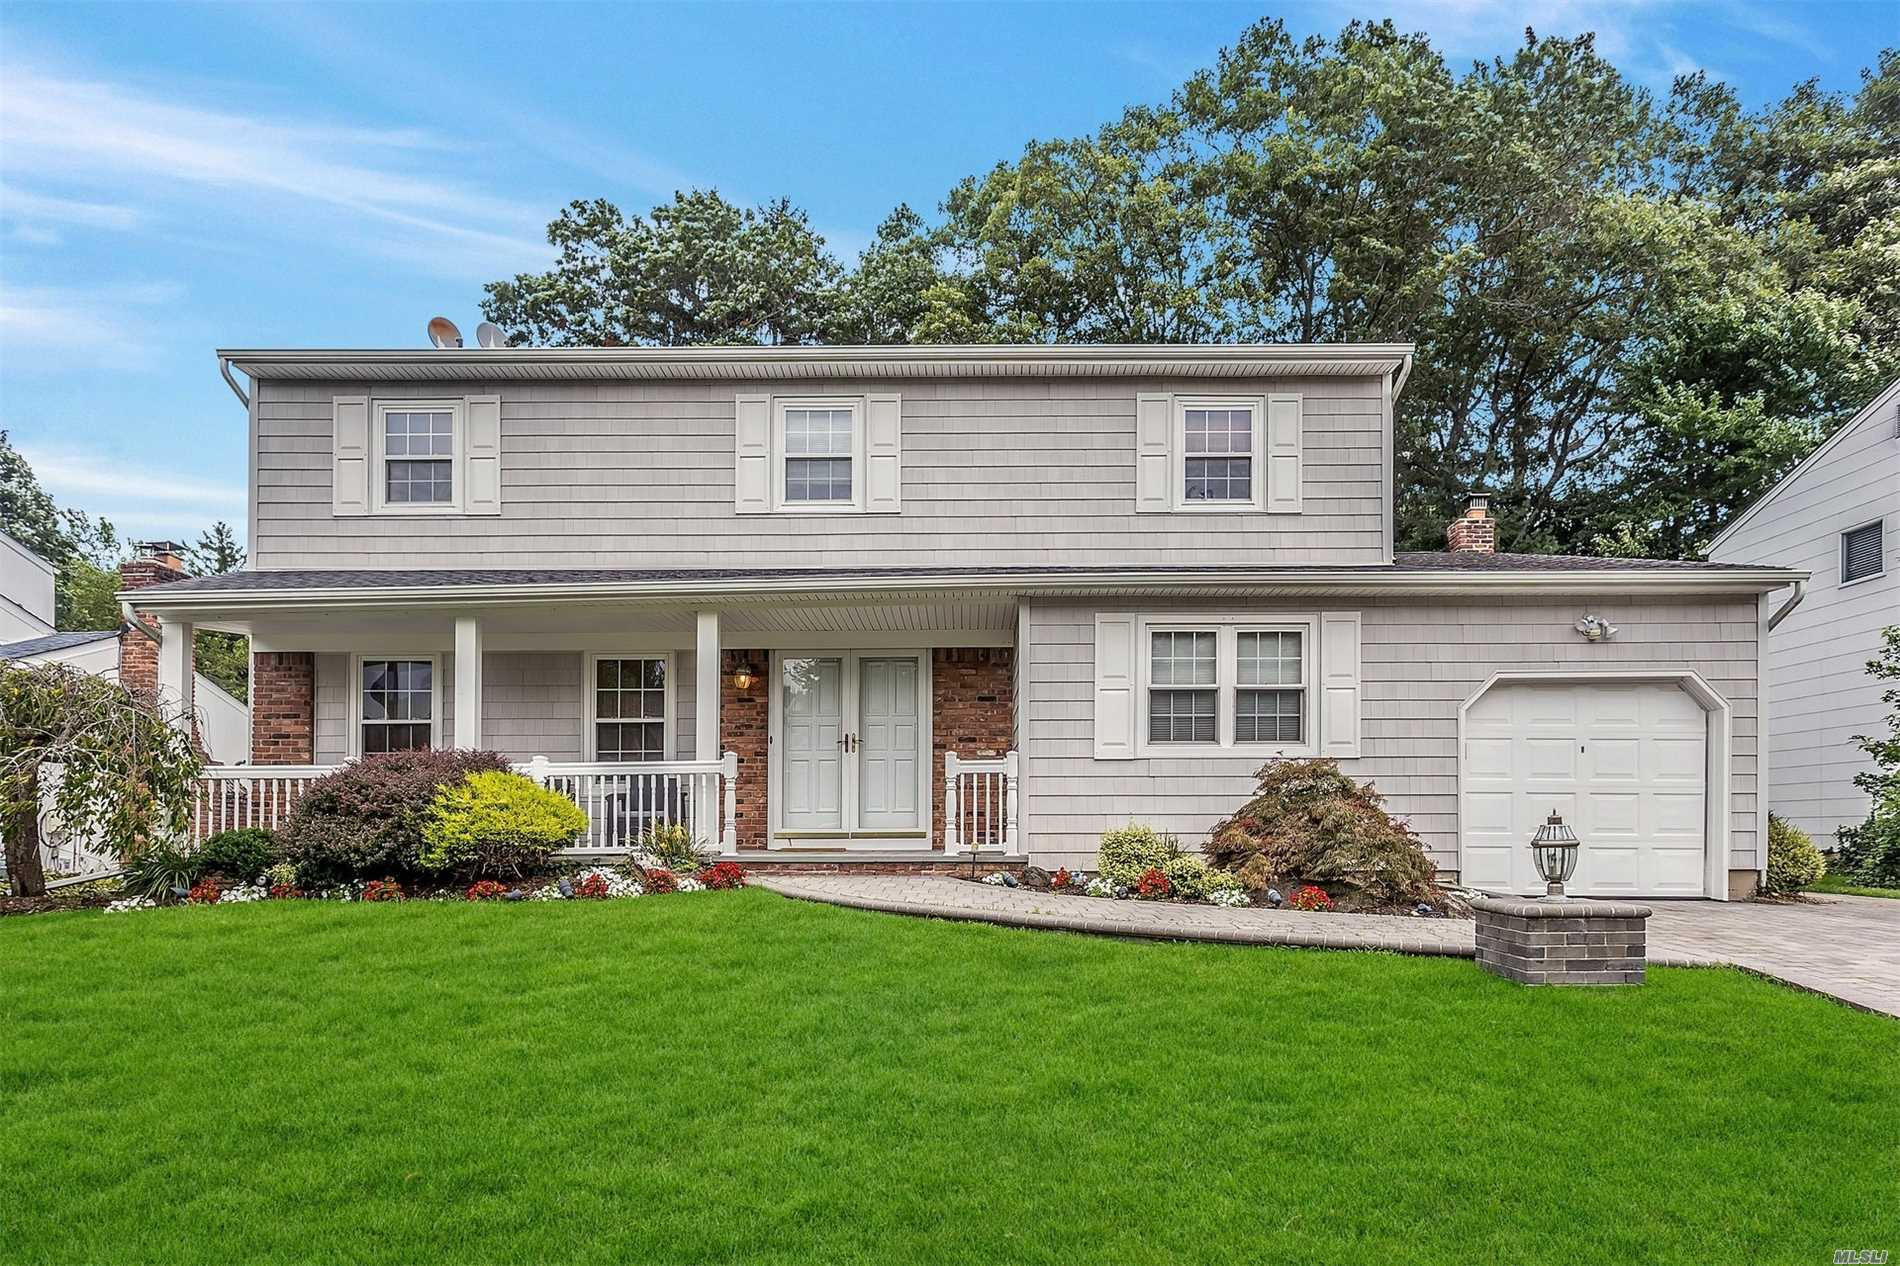 40 Marsulin Dr - Syosset, New York